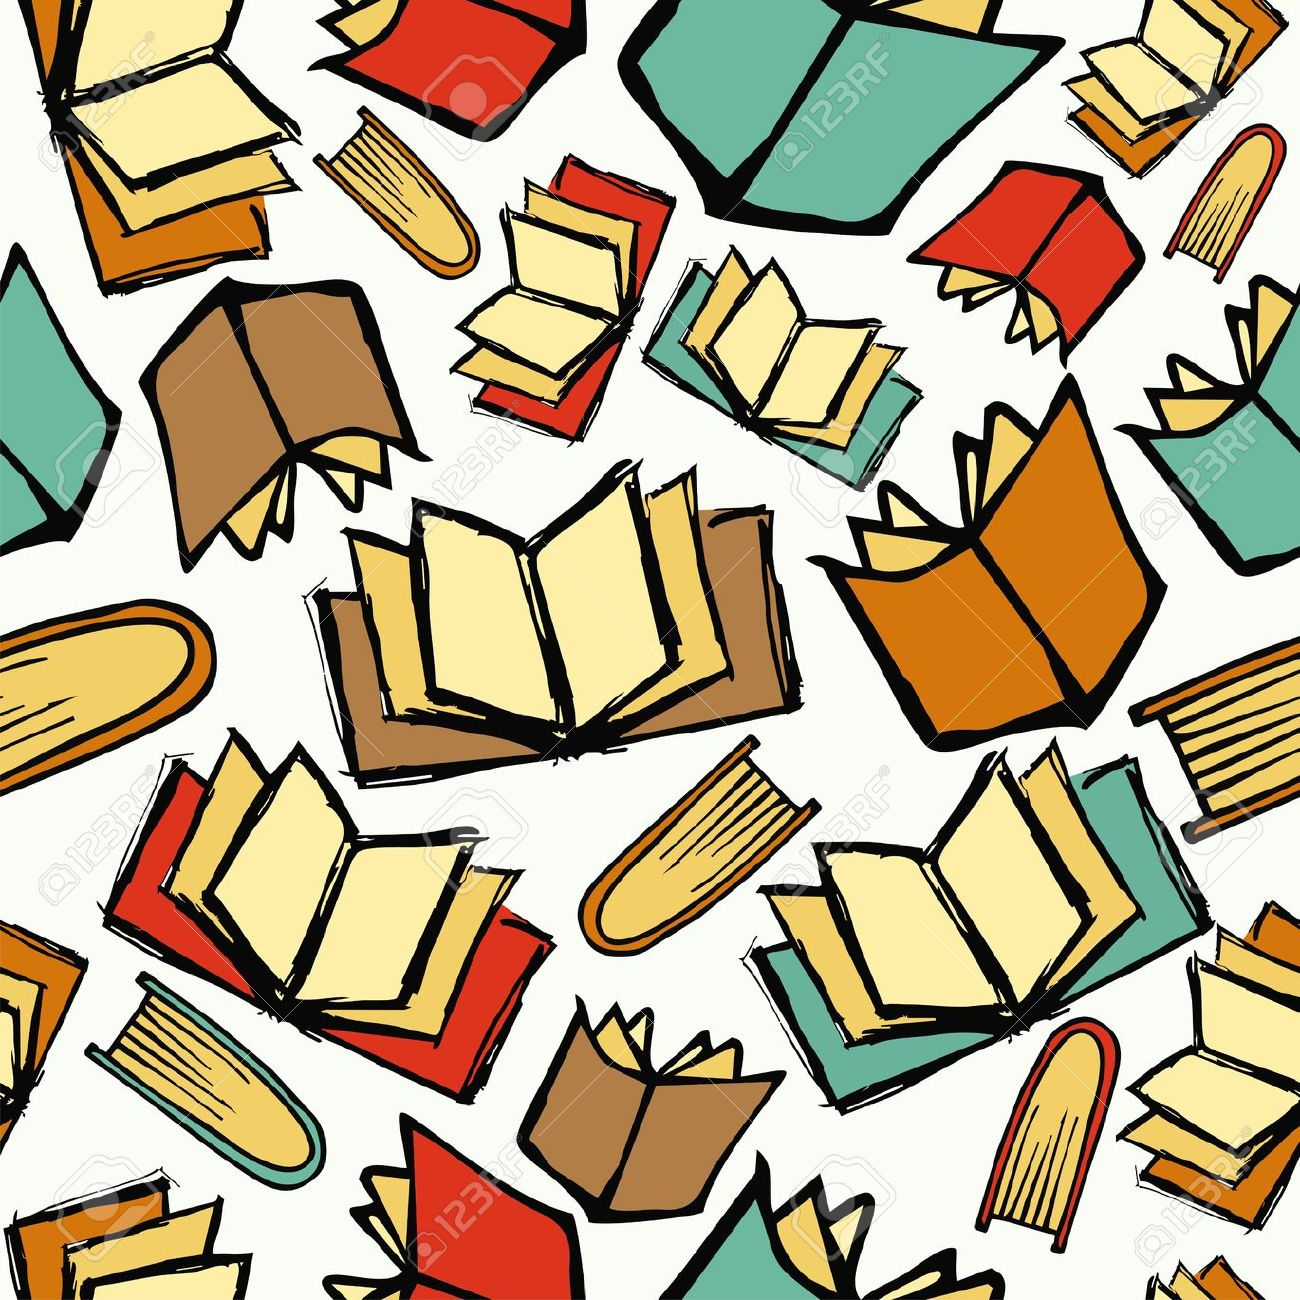 Book clipart easy Cliparts collection Cliparts Zone background